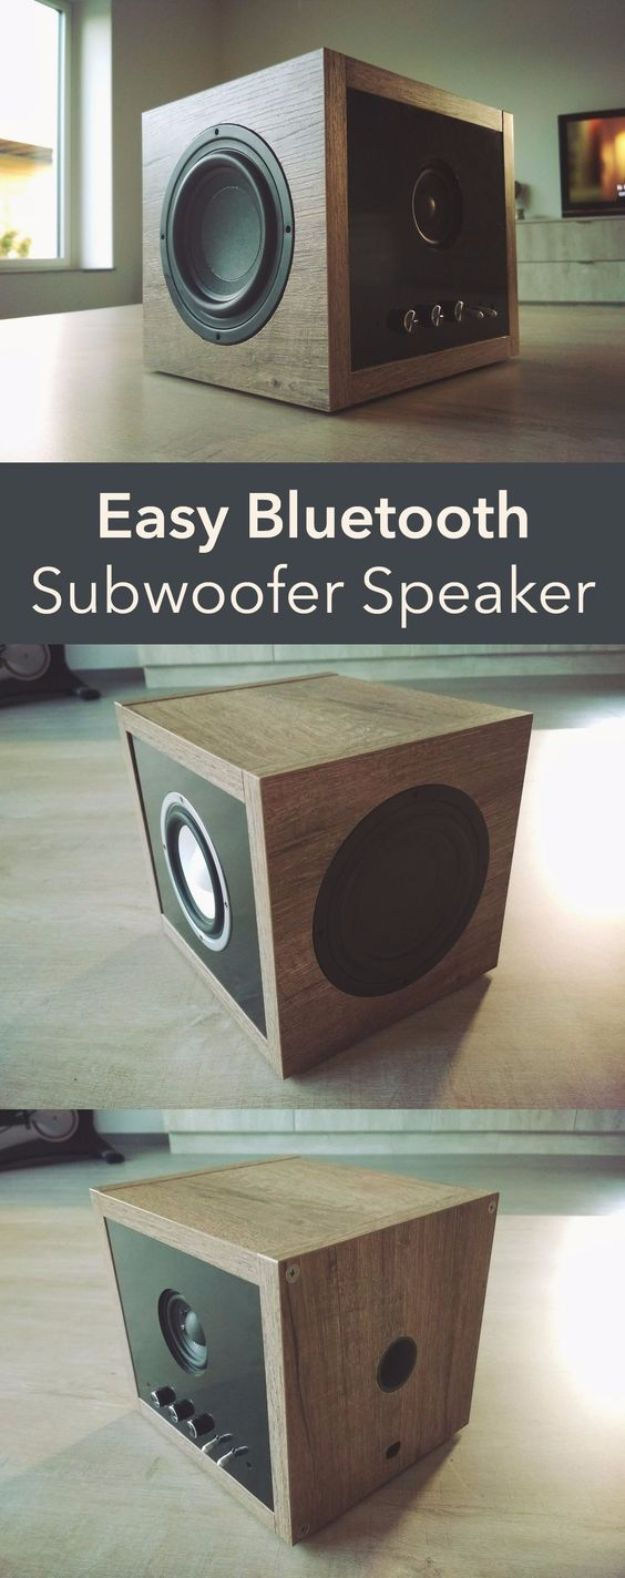 DIY Gadgets - Easy Bluetooth Subwoofer Speaker - Homemade Gadget Ideas and Projects for Men, Women, Teens and Kids - Steampunk Inventions, How To Build Easy Electronics, Cool Spy Gear and Do It Yourself Tech Toys http://diyjoy.com/diy-gadgets